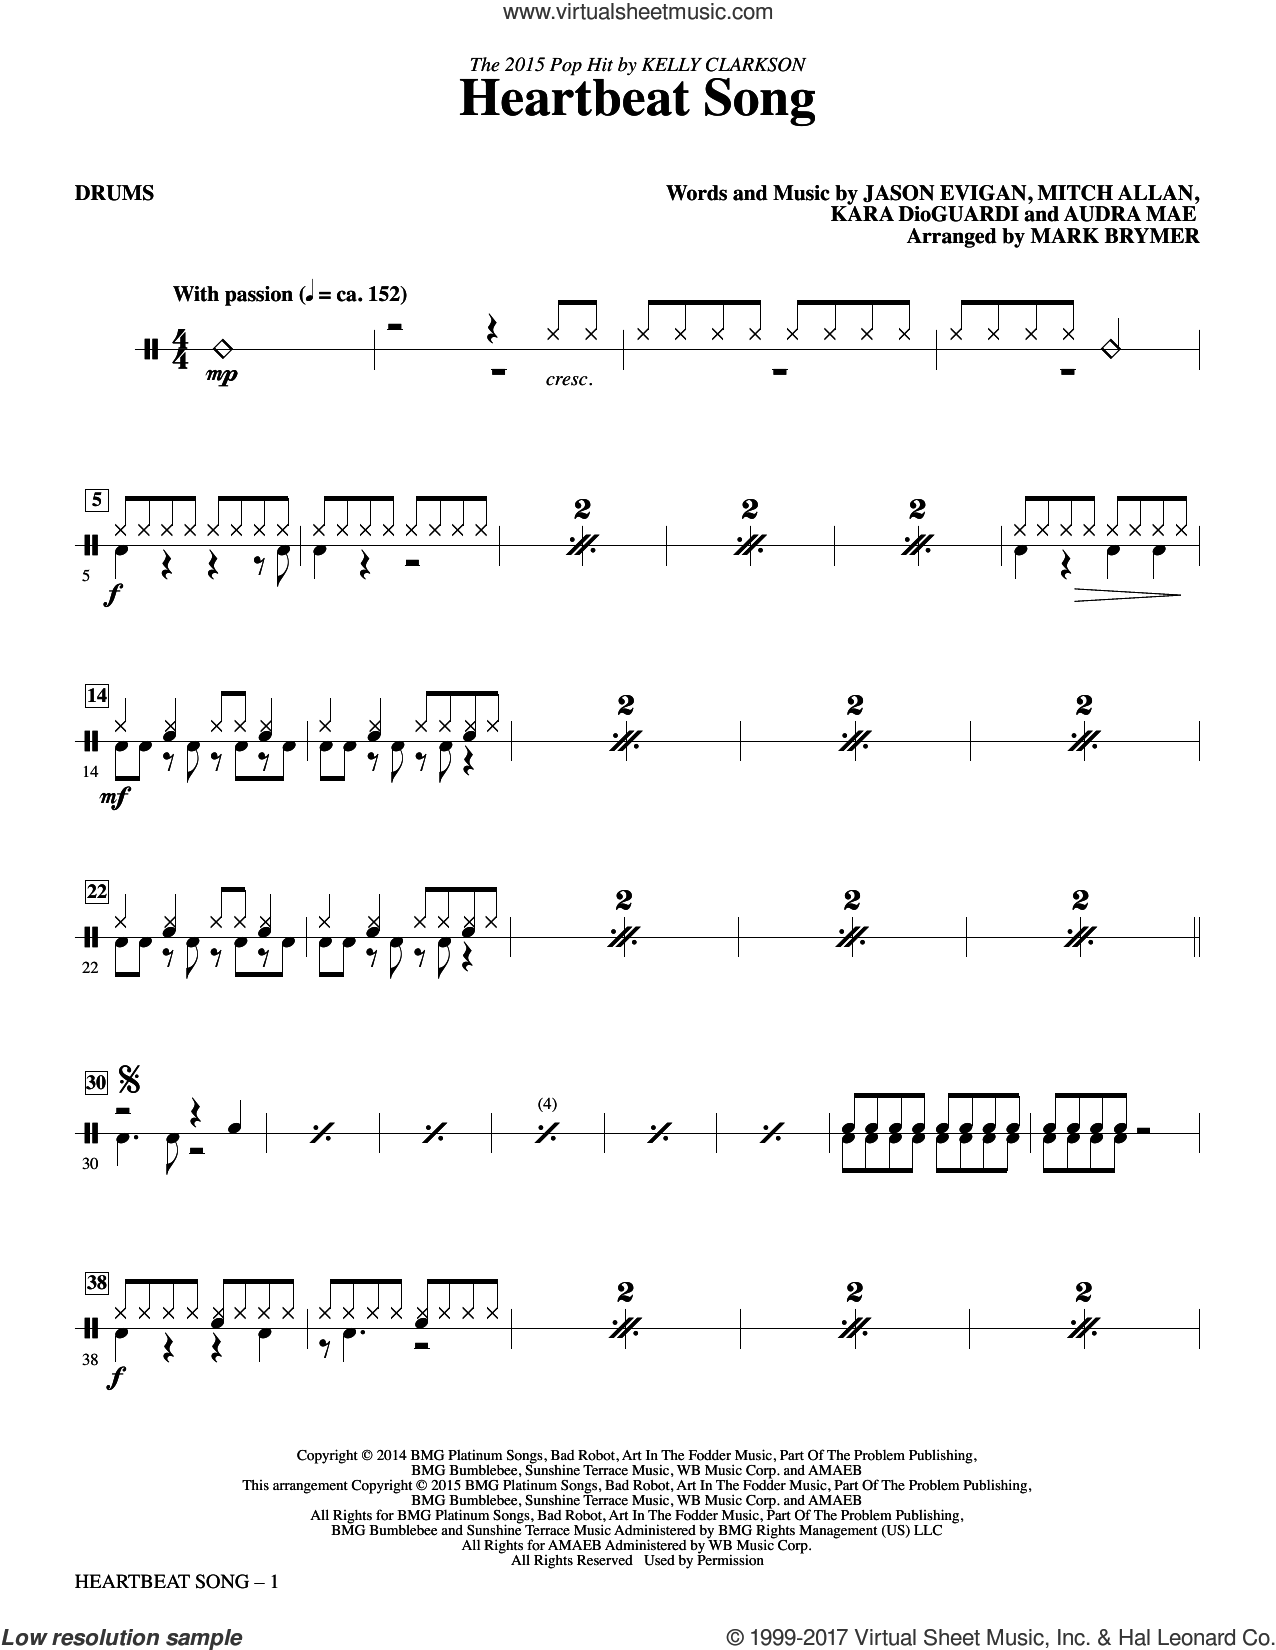 Heartbeat Song (arr. Mark Brymer) (complete set of parts) sheet music for orchestra/band by Mark Brymer, Audra Mae, Jason Evigan, Kara DioGuardi, Kelly Clarkson and Mitch Allan, intermediate skill level